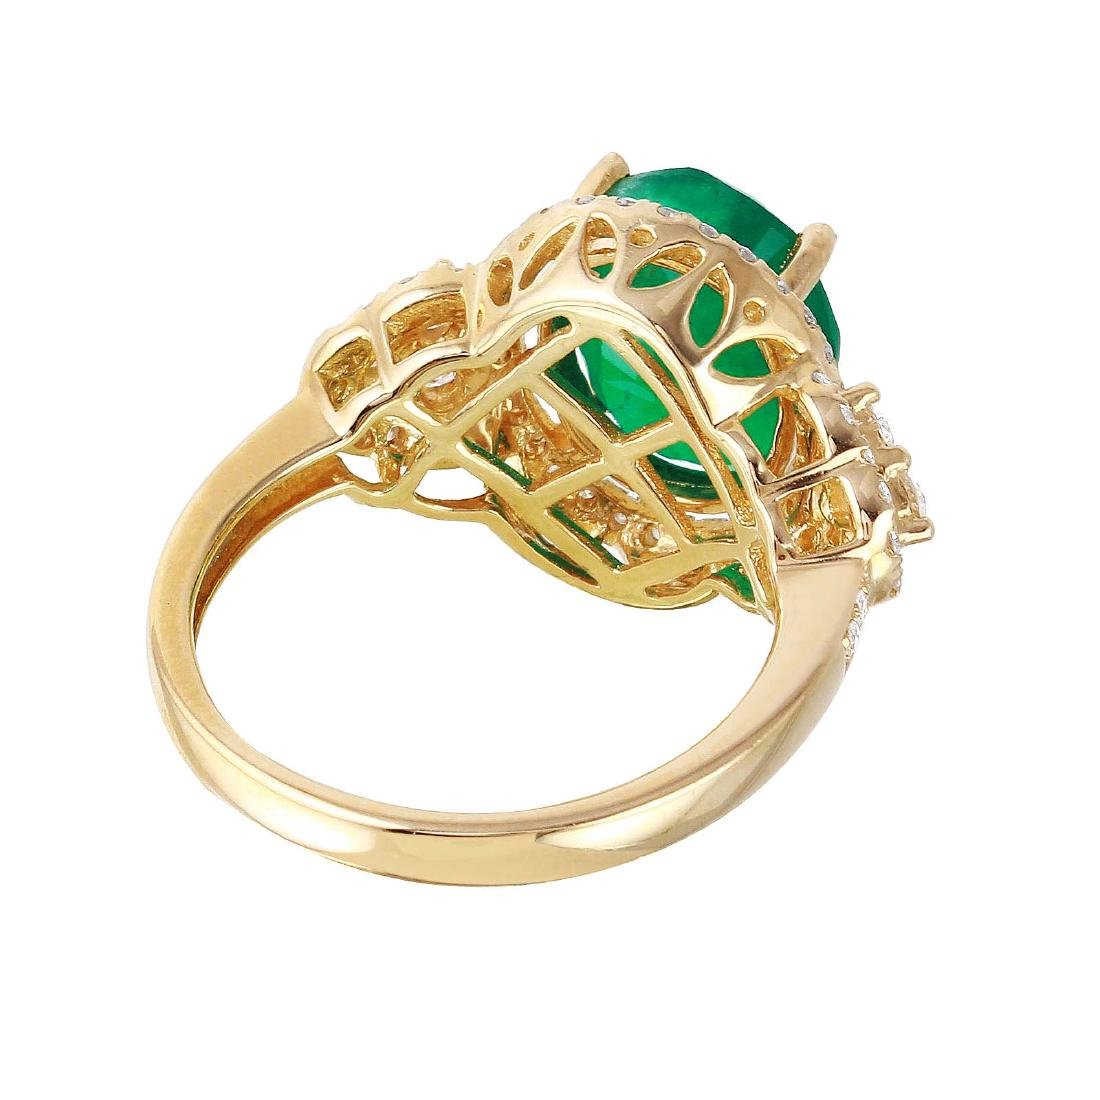 14KT Yellow Gold Emerald and Diamond Ring - 3